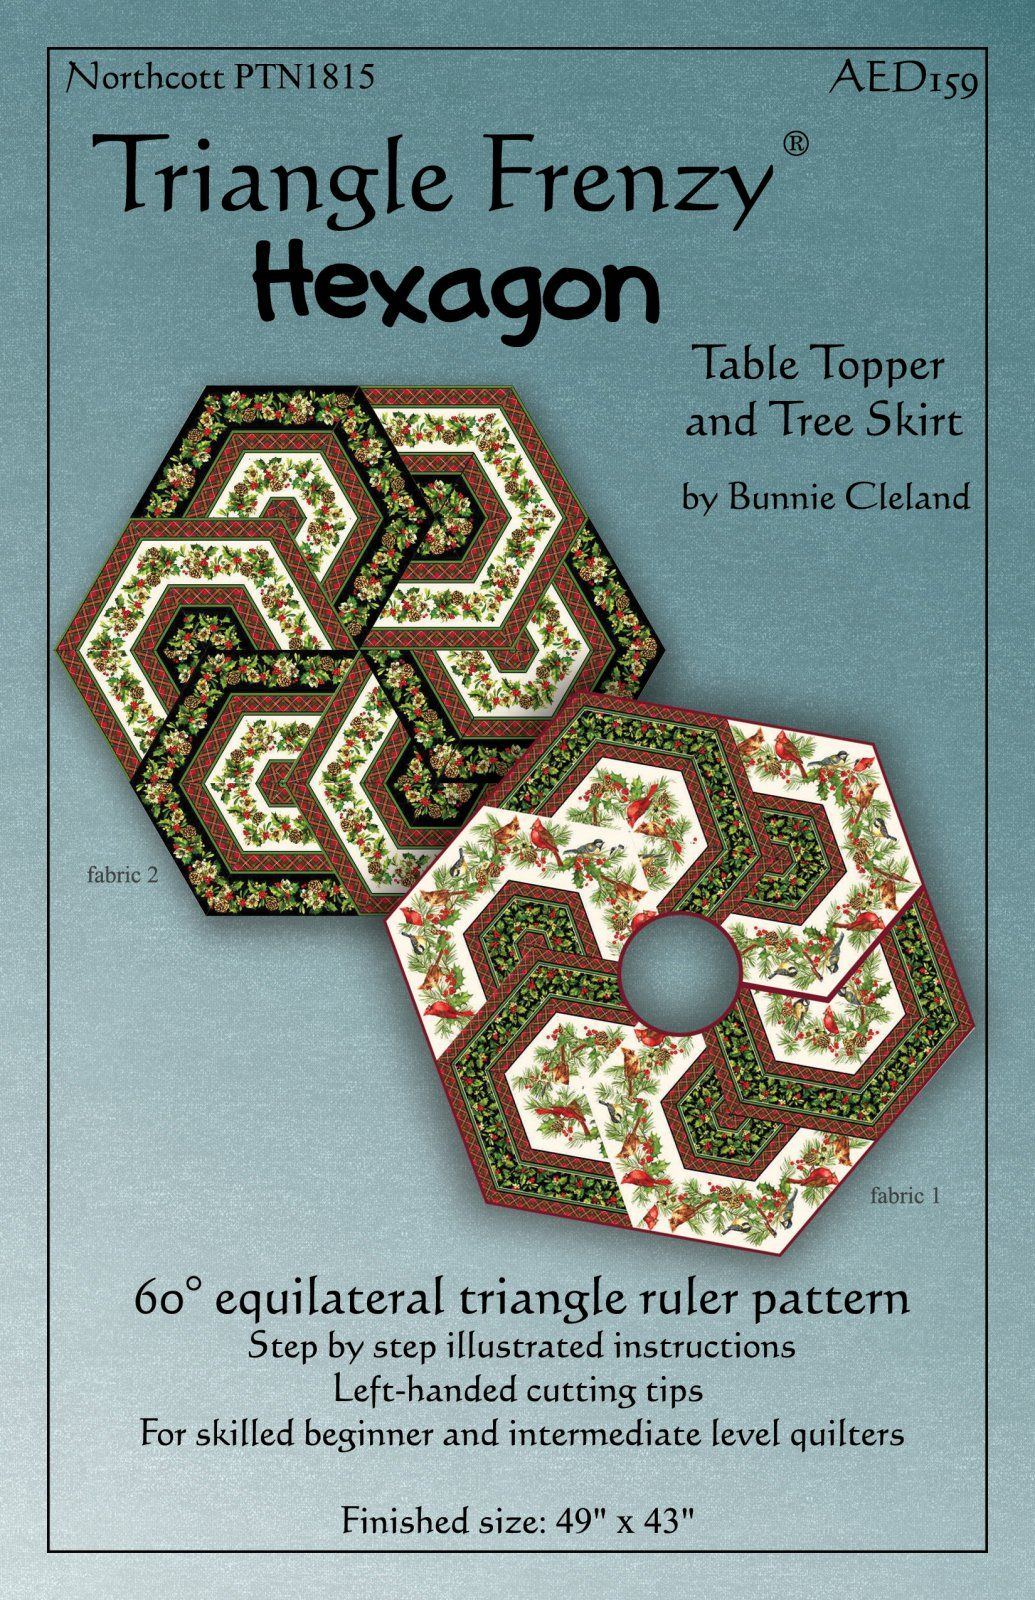 triangle frenzy hexagon pattern quilts quilt accent your focus table runner and placemats quilted runners kaleidoscope corner console white folding side small tables for living